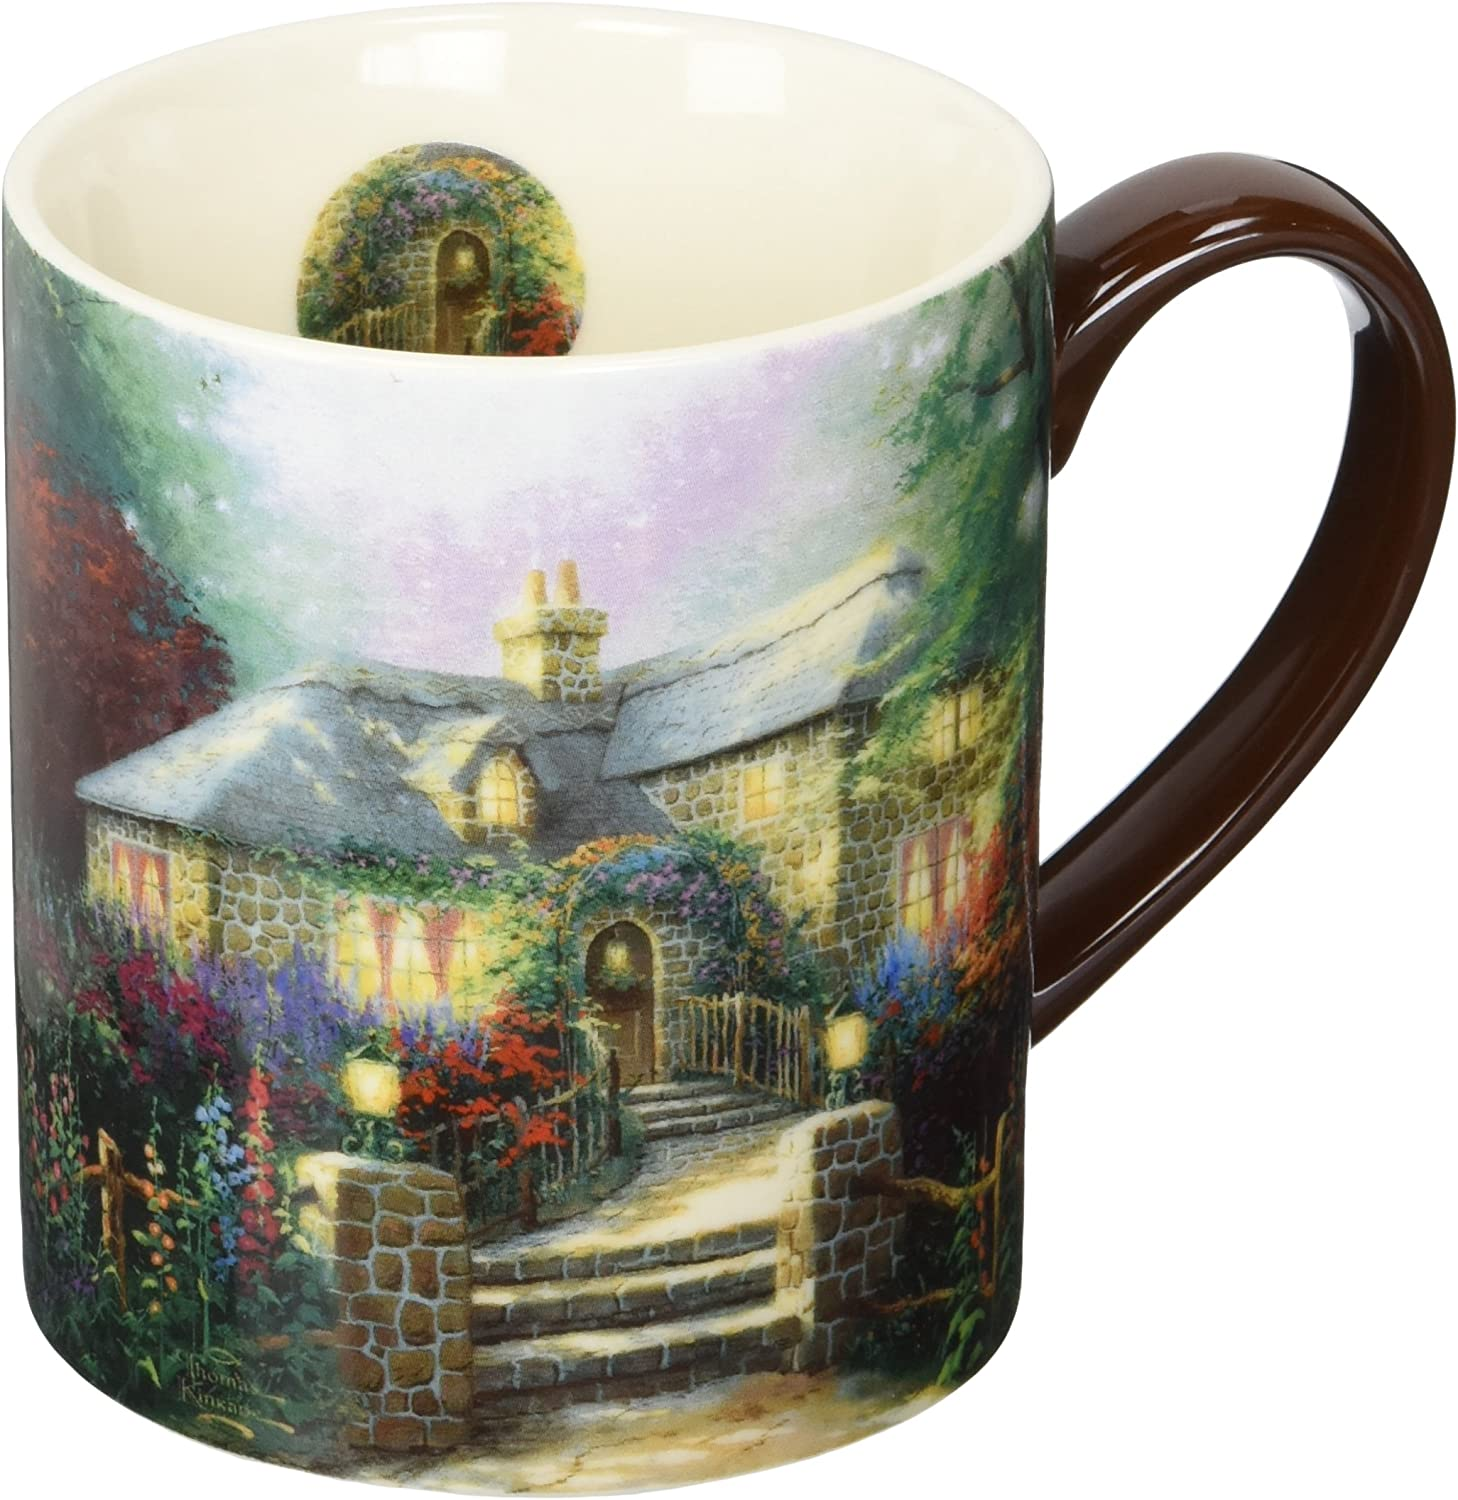 Lang Hollyhock House Mug by Thomas Kinkade, 14 oz, Multicolored